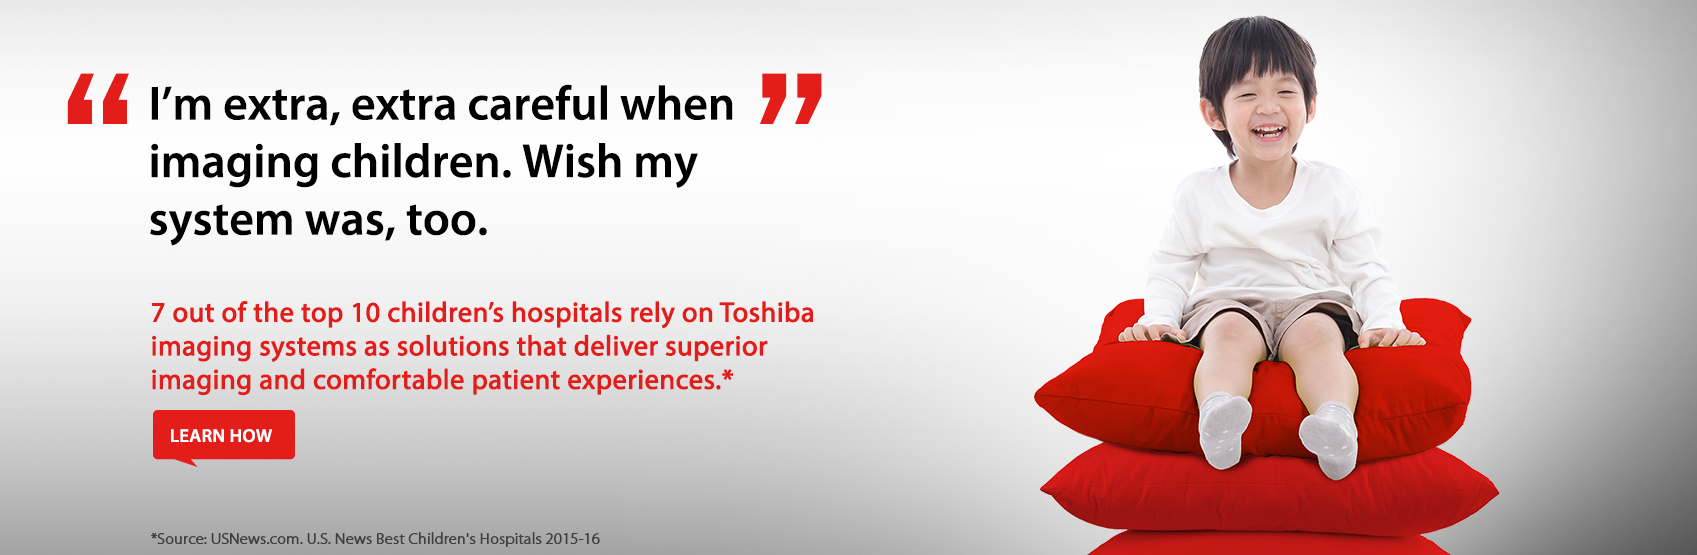 7 out of the top 10 children's hospitals rely on Toshiba imaging systems as solutions that deliver superior imaging and comfortable patient experiences. Learn More.